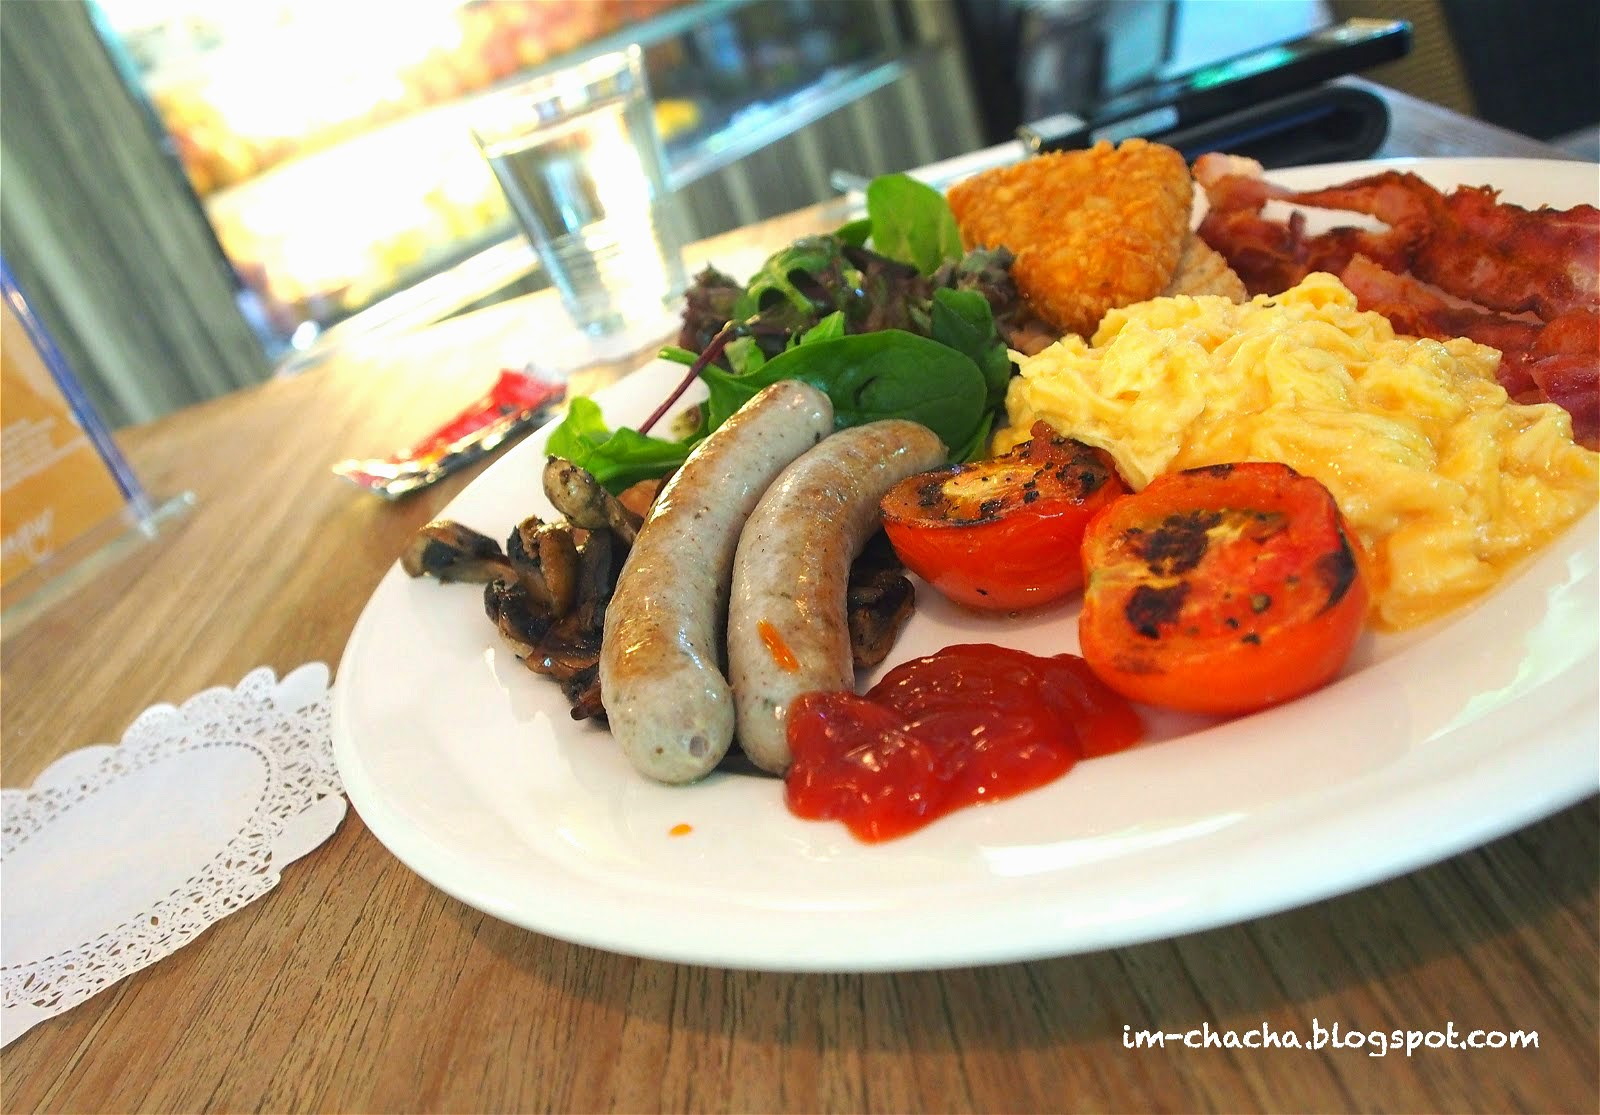 Brunch experience @ Canopy Garden Dining u0026 Bar & Brunch experience @ Canopy Garden Dining u0026 Bar - imchacha - Travel ...